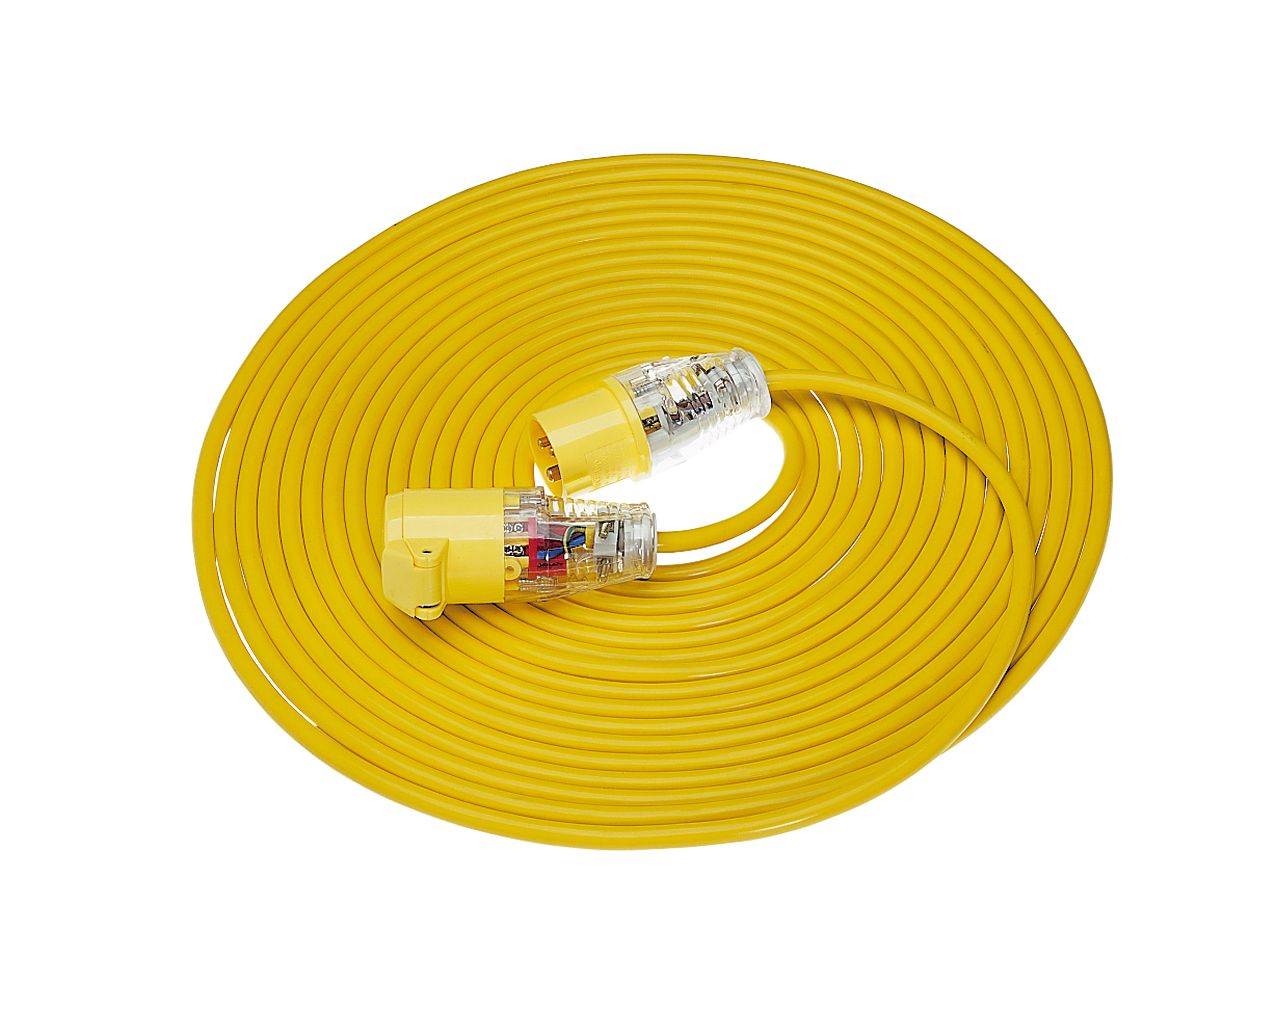 Extension Lead 110v 16a 2.5mm - 25m